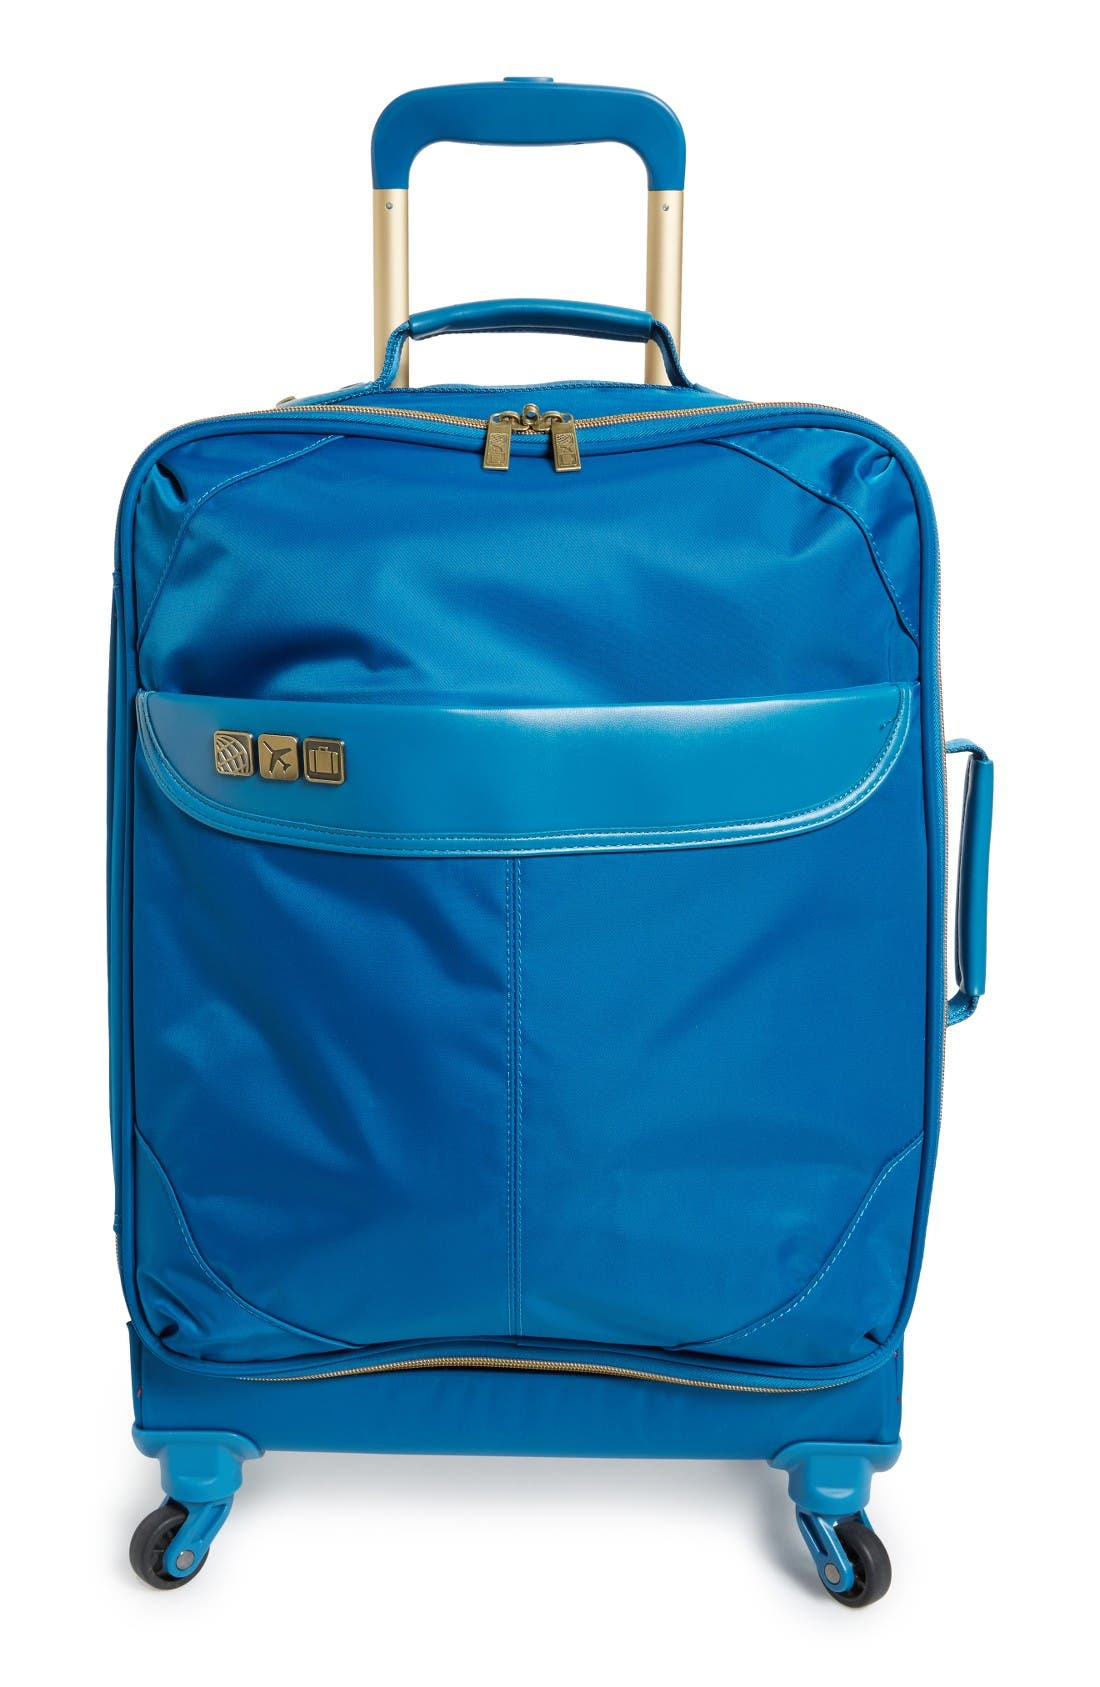 Alternate Image 1 Selected - Flight 001 Avionette 19-Inch Rolling Carry-On Suitcase